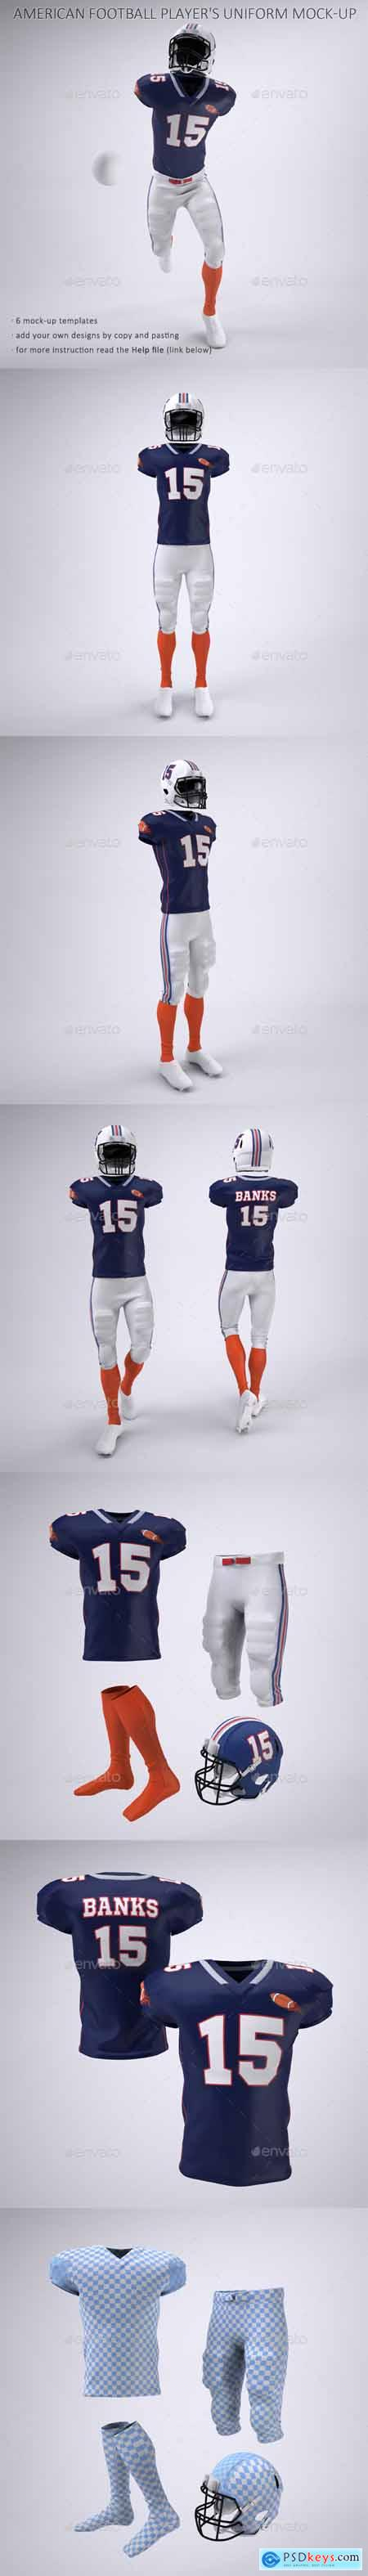 American Football Player's Uniform Mock-Up 23903919